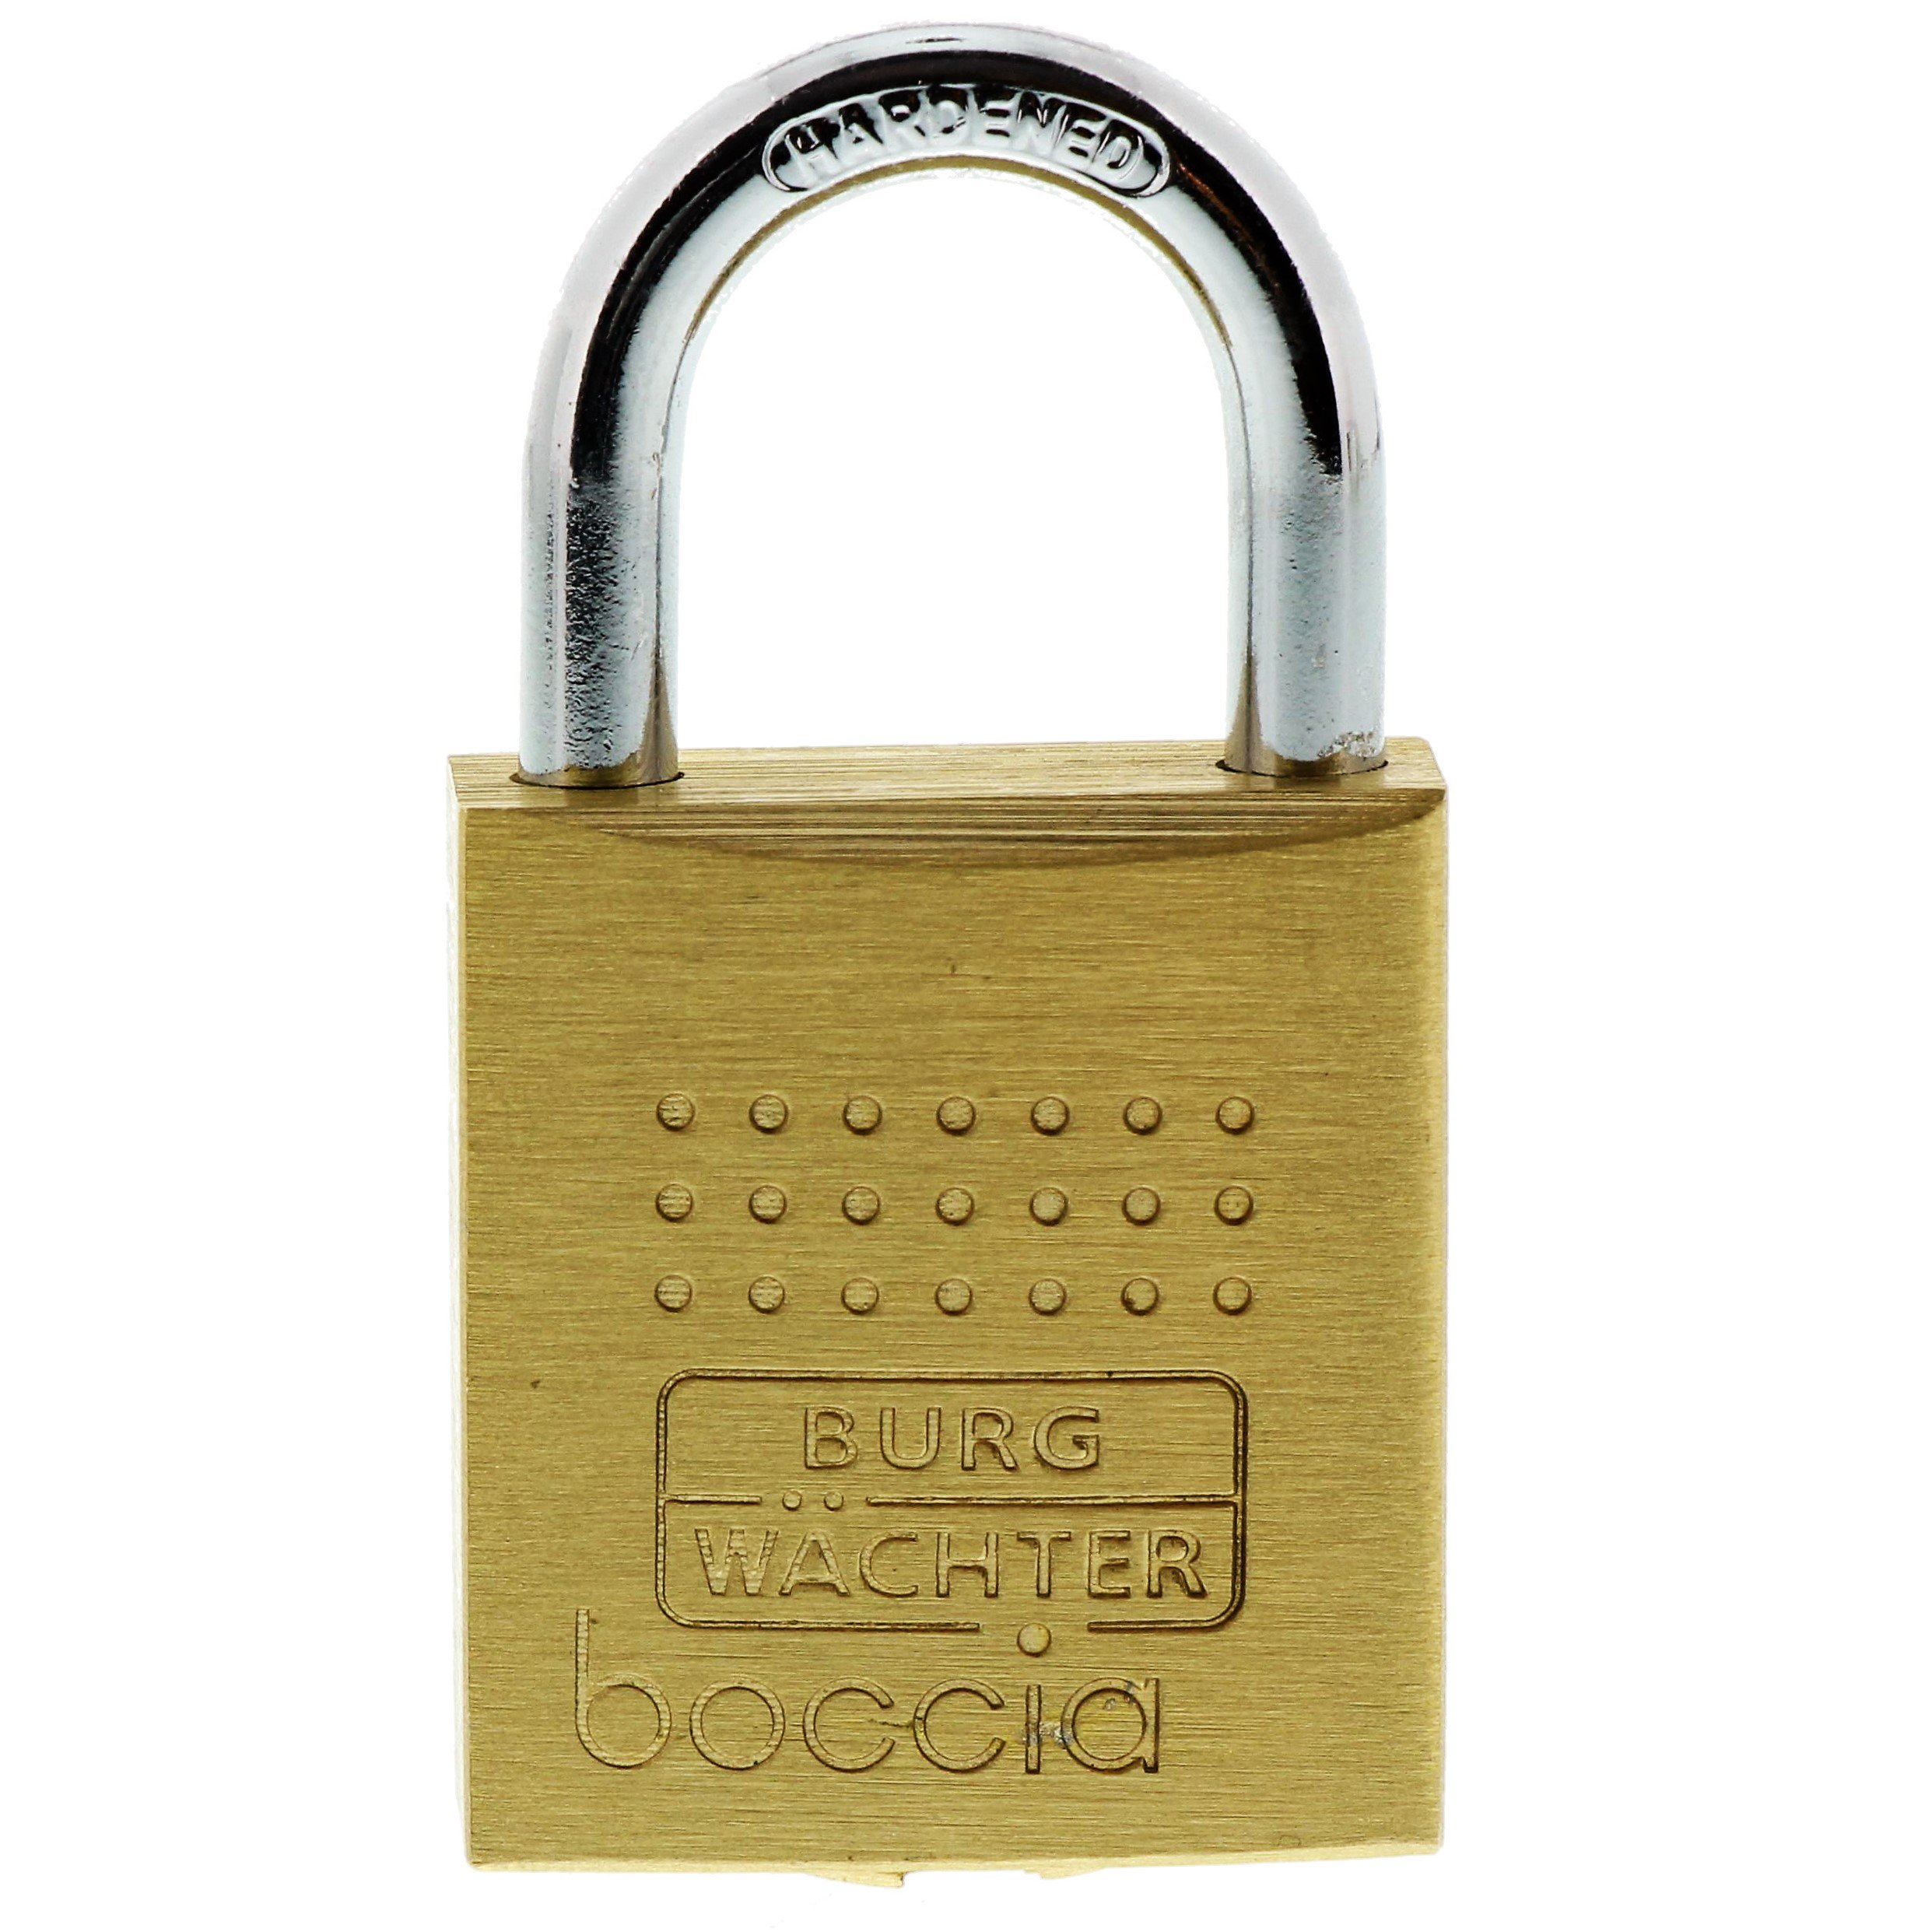 Burg-Wächter Padlock, 5 mm Thickness, Pincers, 4 Keys, Boccia 450 SB-Packed 30 4 Pack of 1